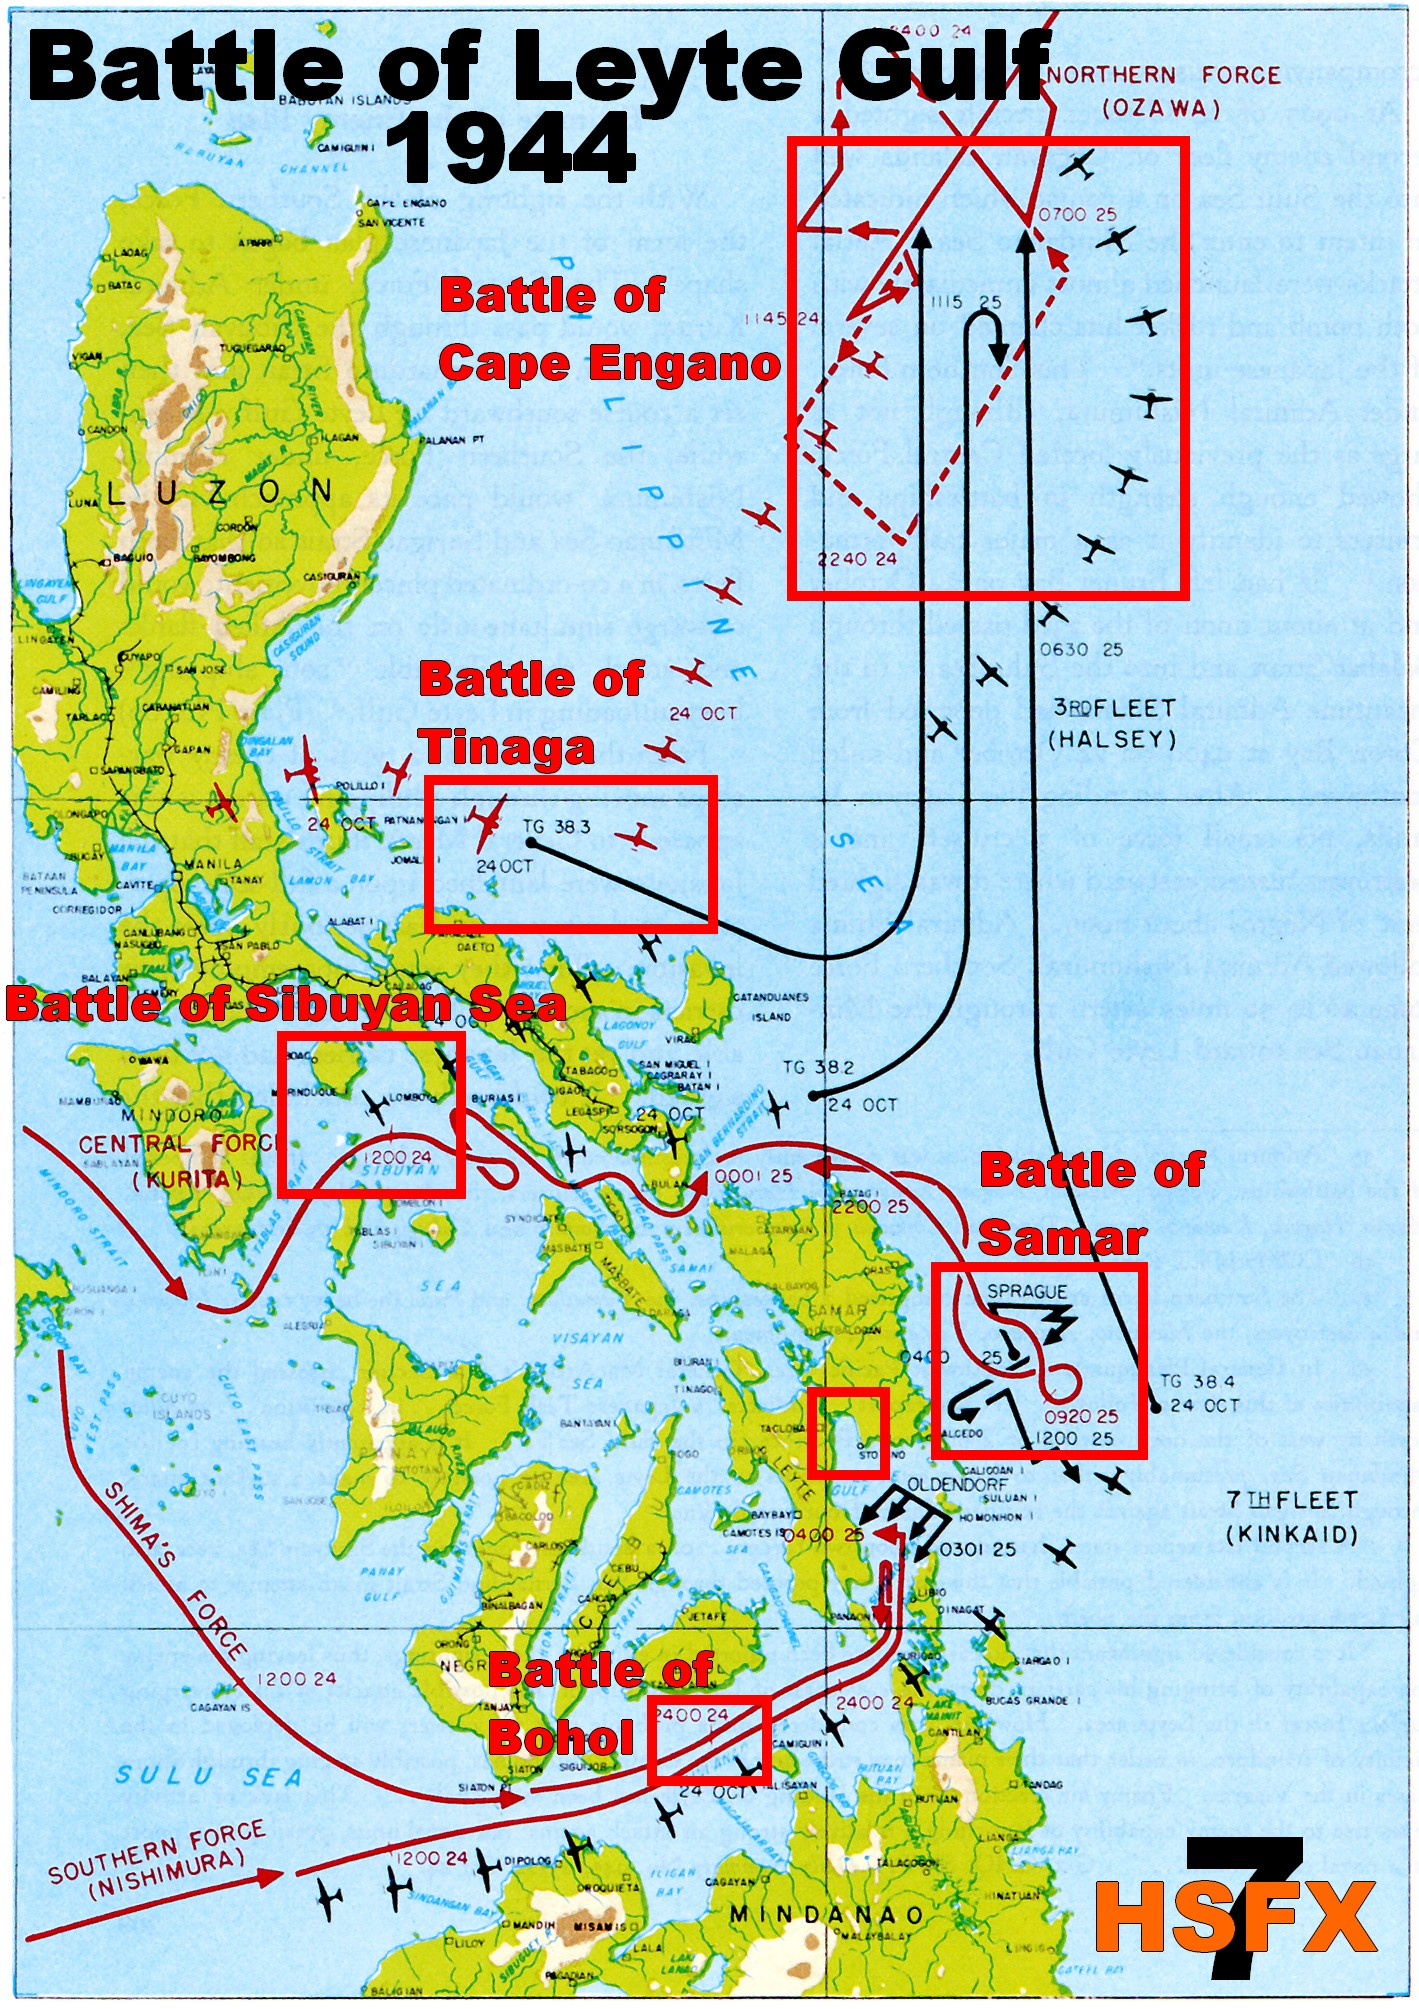 battle of leyte gulf Start studying apush chapter 36 (the american pageant) learn vocabulary, terms, and more with flashcards battle of leyte gulf 1944 world war ii naval battle betweeen the united states and japan.